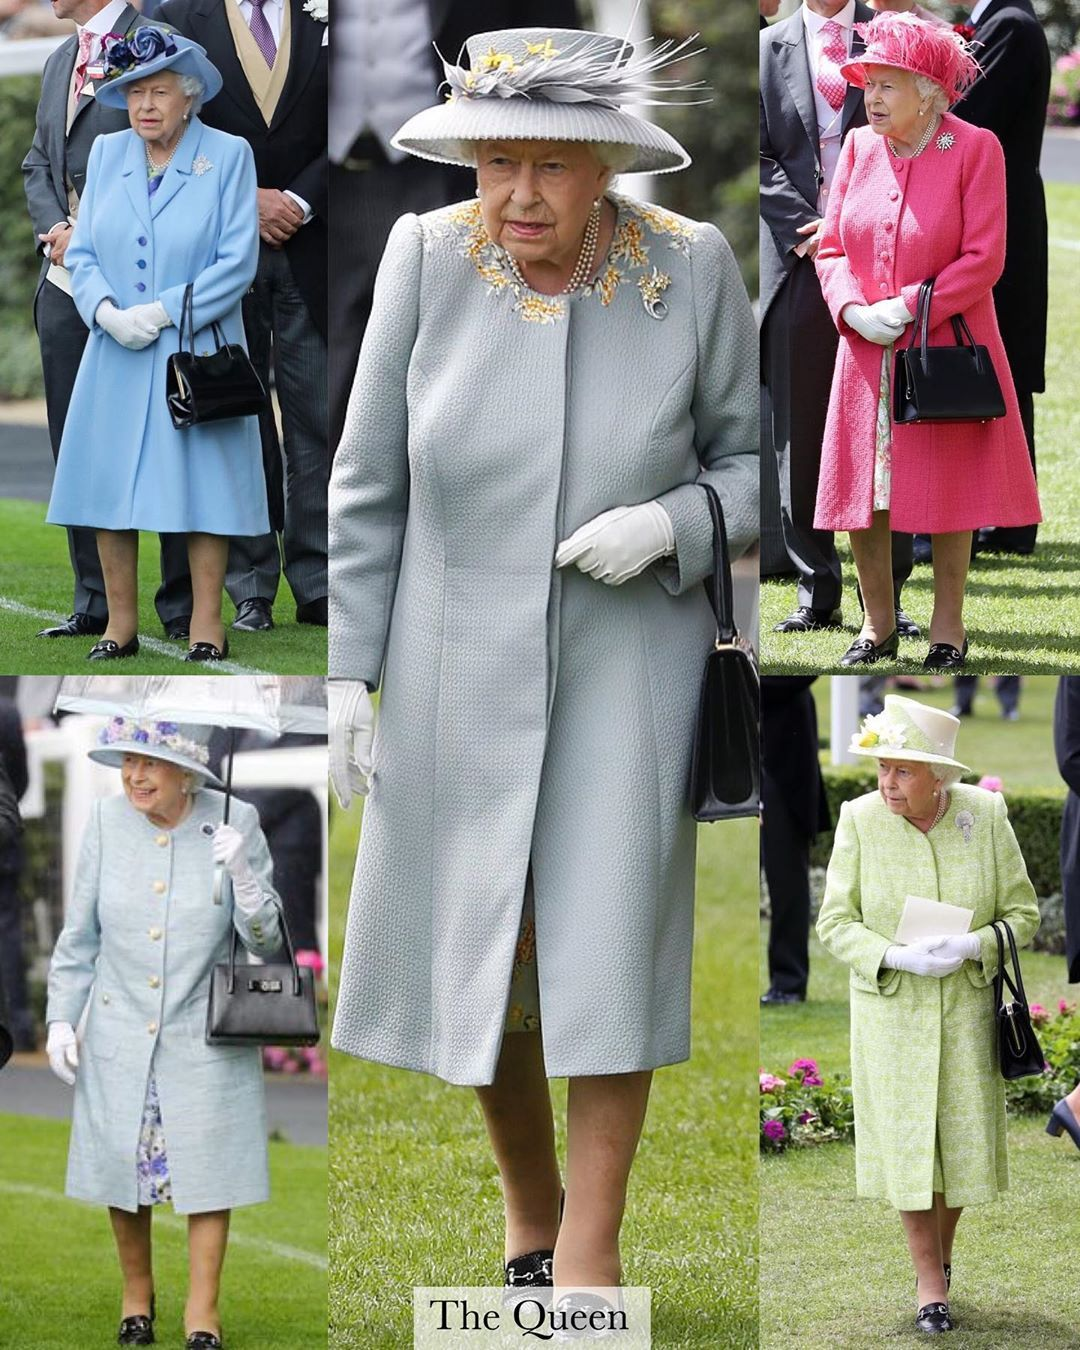 Hm Queen Elizabeth 2 Royal Ascot Having Concluded For 2019 Let S Take A Look Back At The Outfits Worn By Th Royal Ascot Queen Elizabeth Royal Family Portrait [ 1350 x 1080 Pixel ]